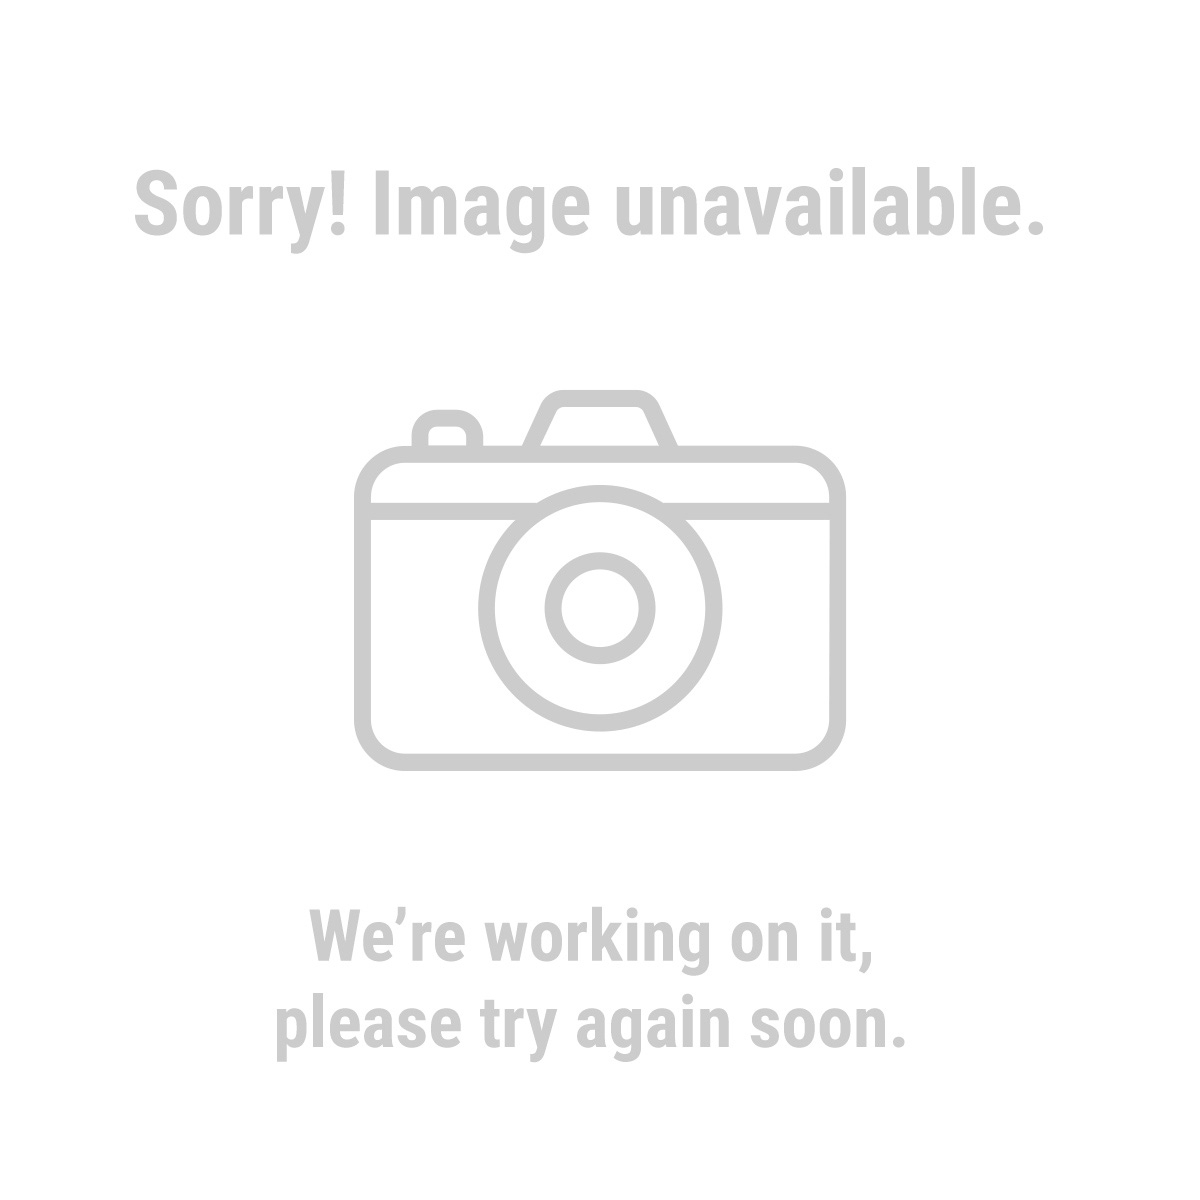 Storehouse 67593 250 Piece Flat and Lock Washers